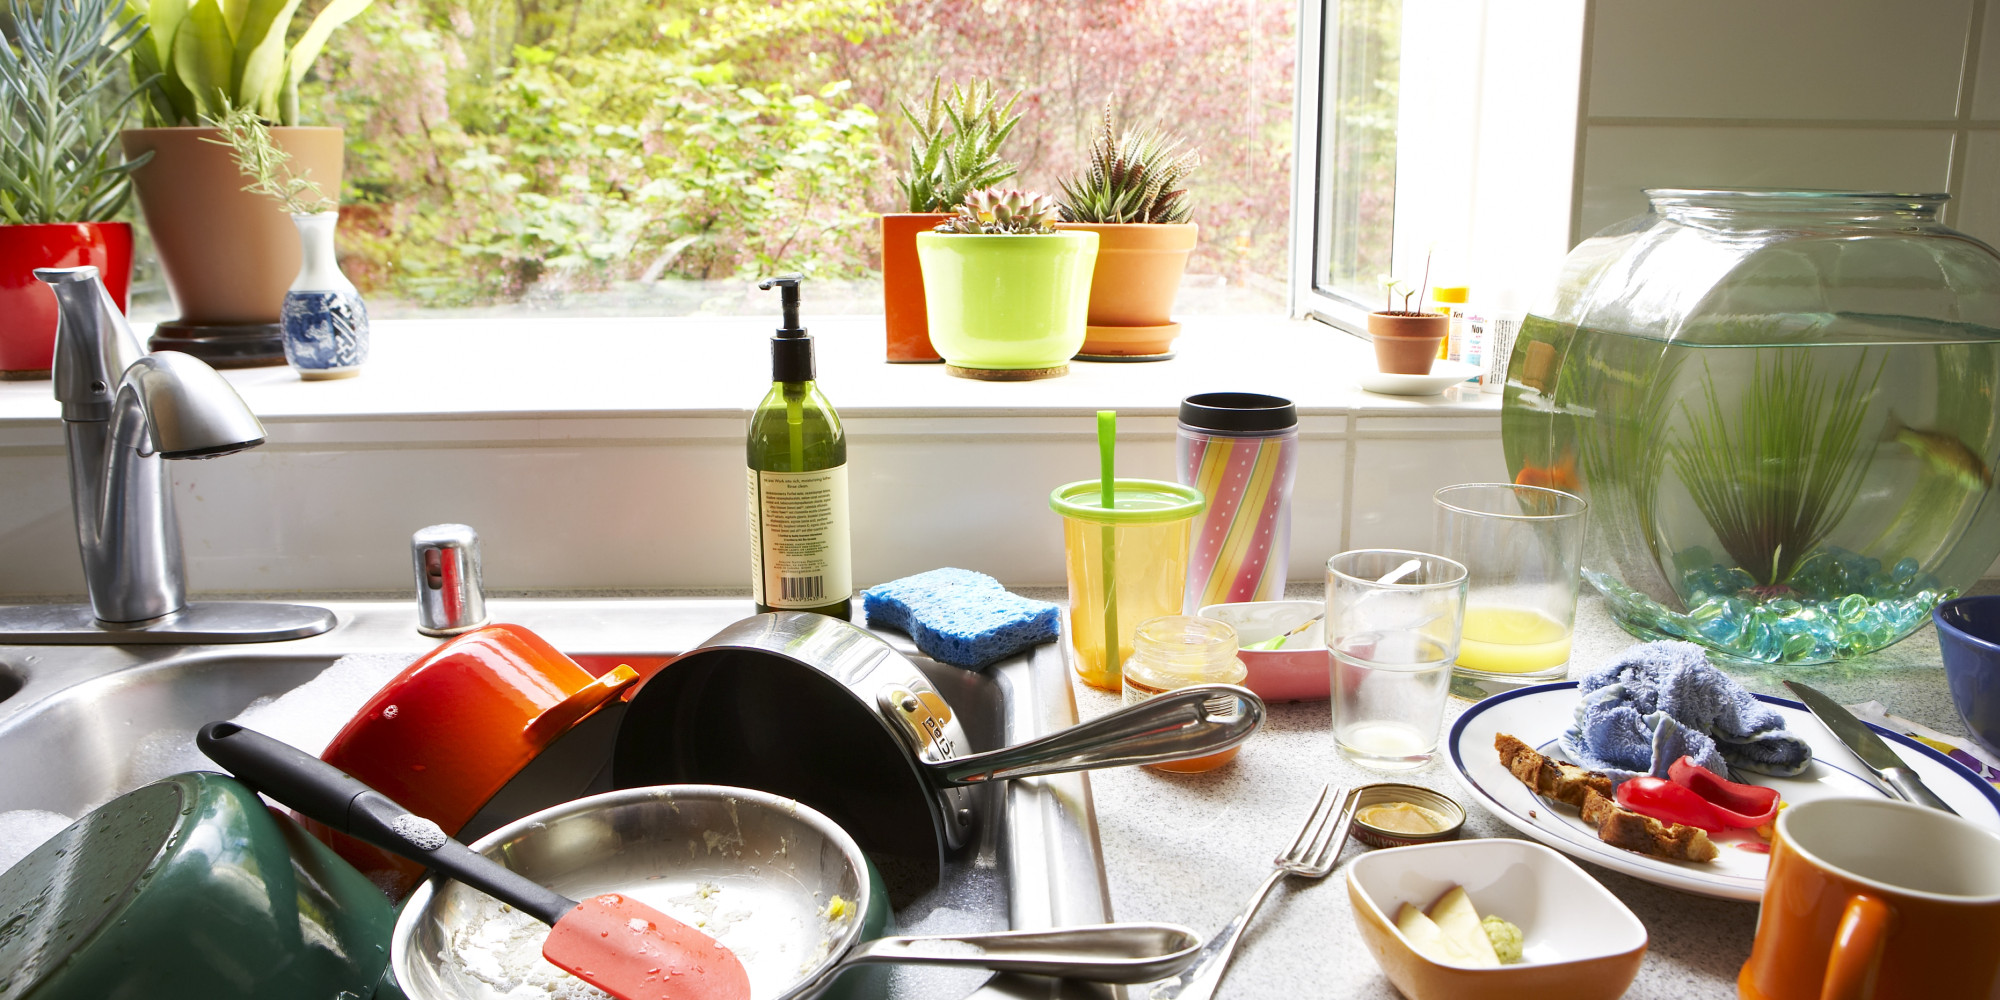 10 Painless Ways To Change Your Messy Habits